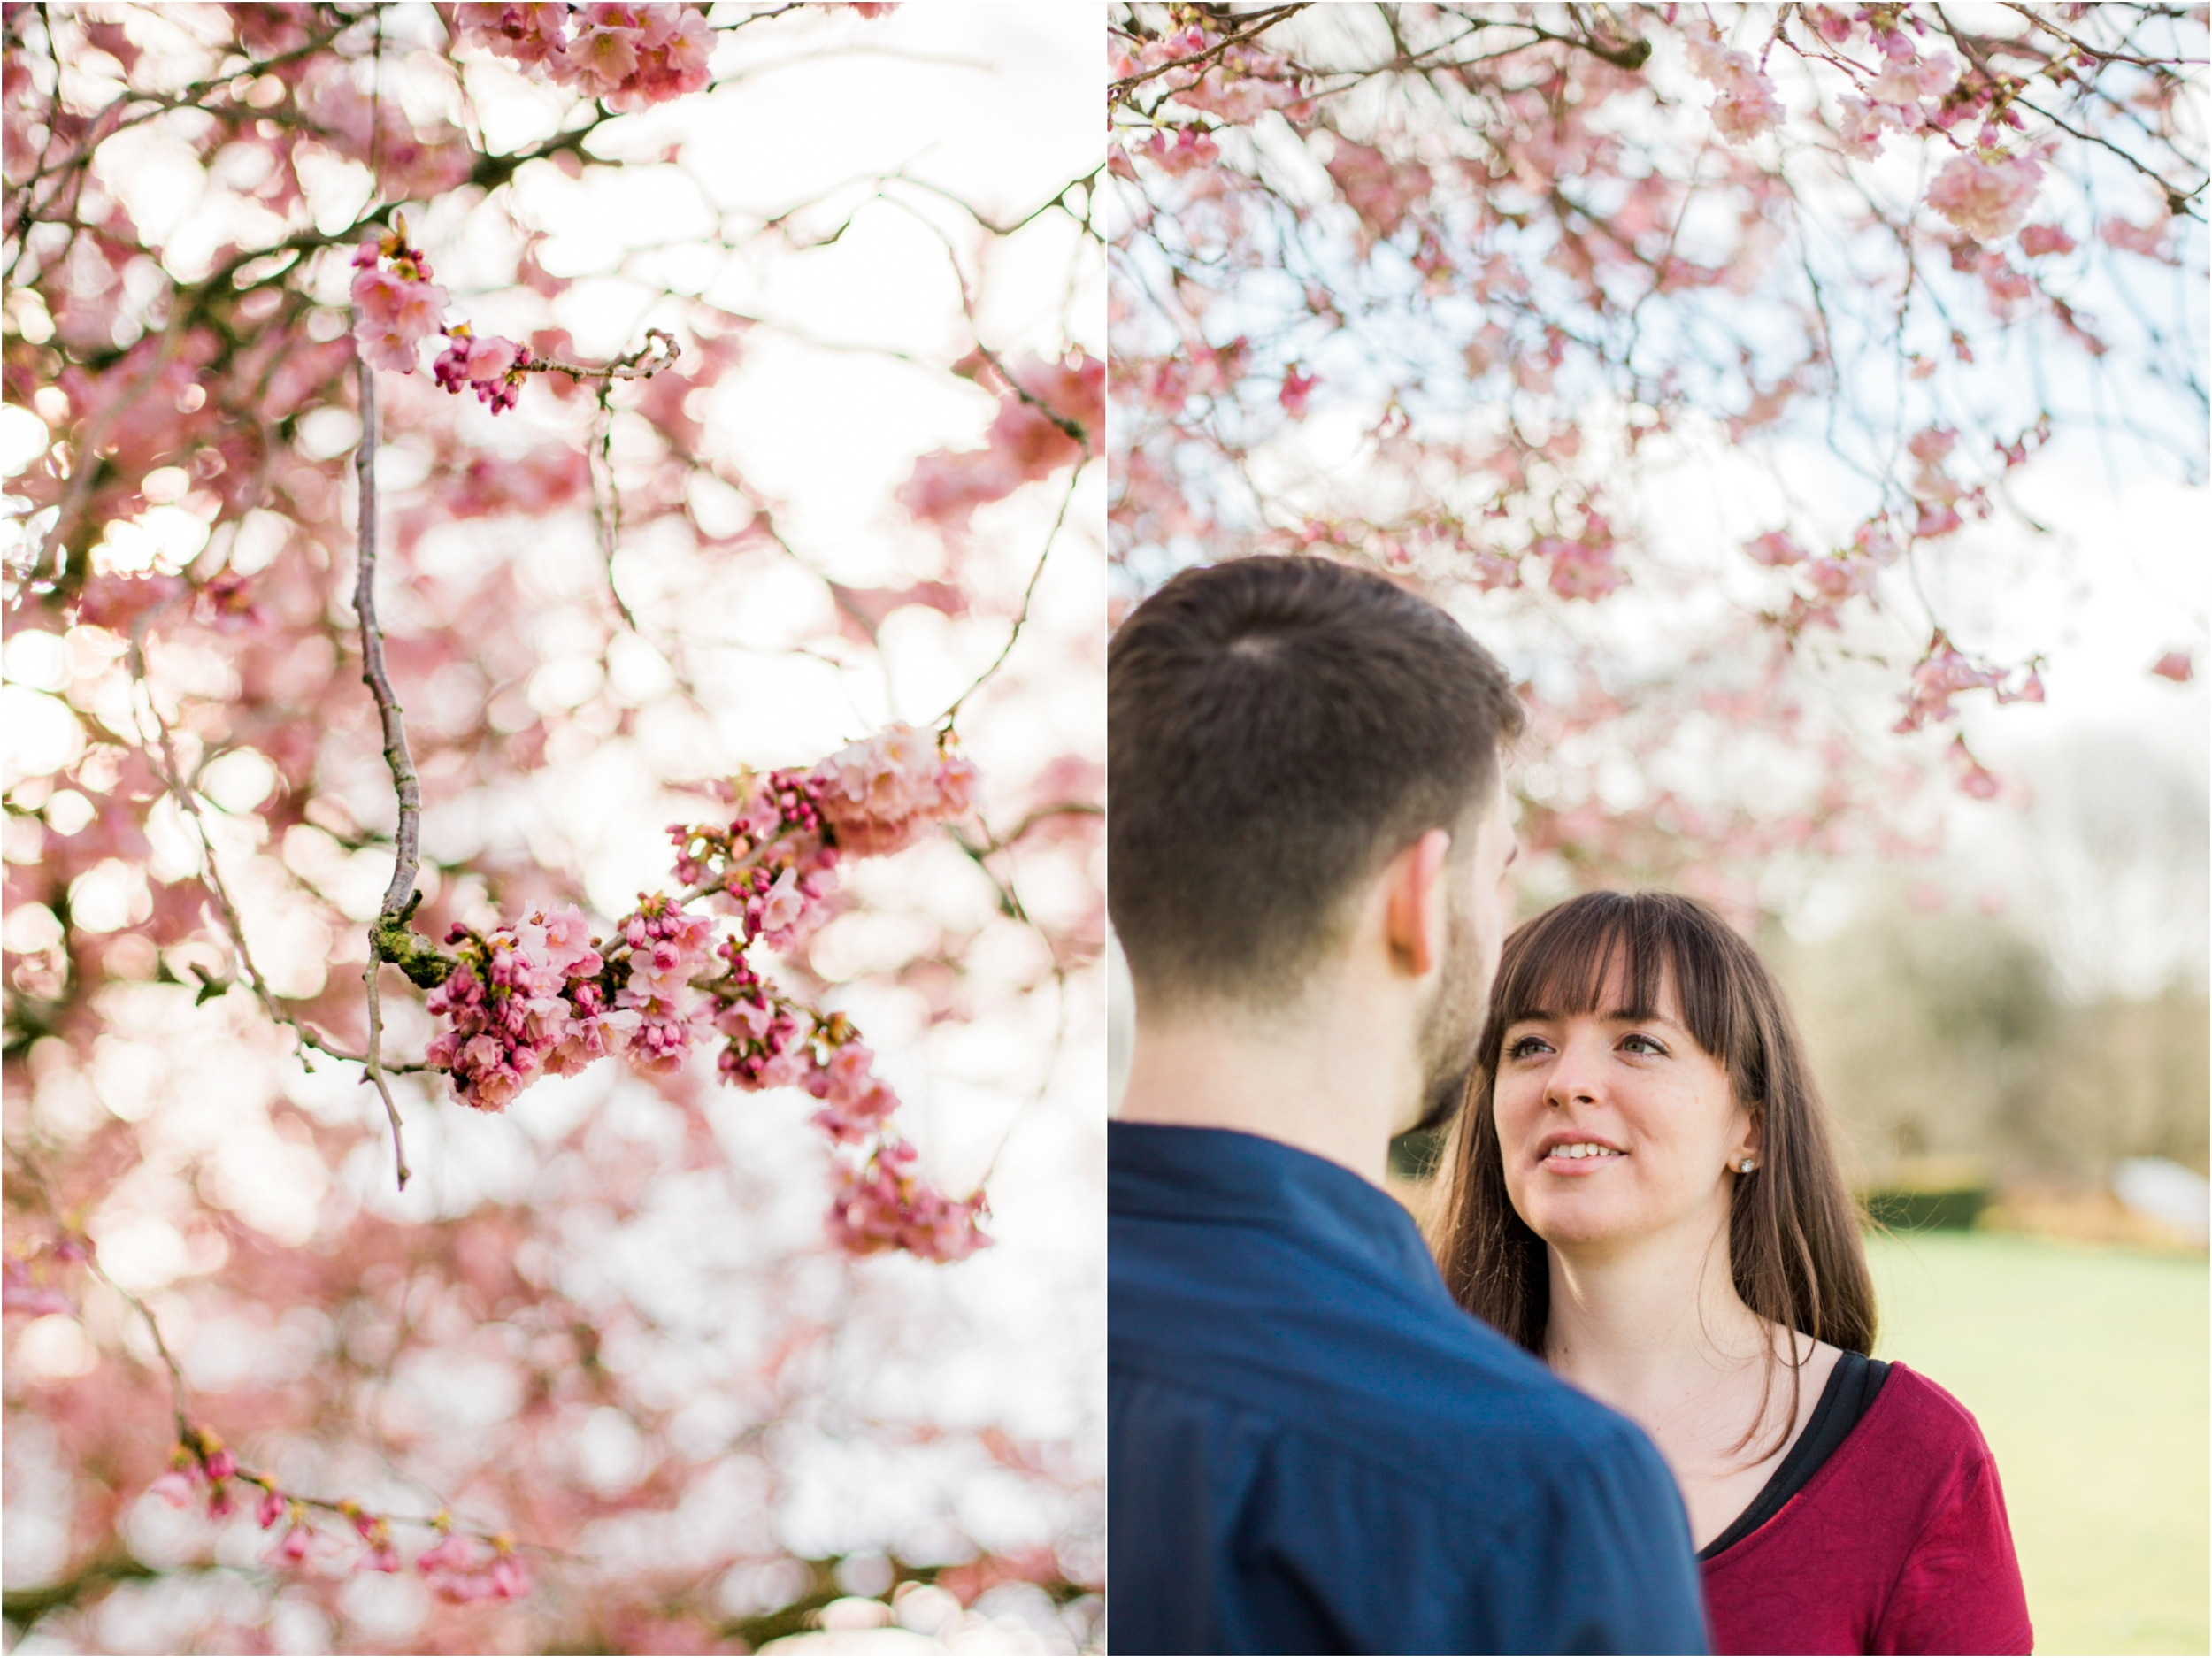 Sophie Evans Photography, Alice & Nathanael Botanical Gardens Engagement Shoot. Warwickshire Wedding Photographer (6).jpg